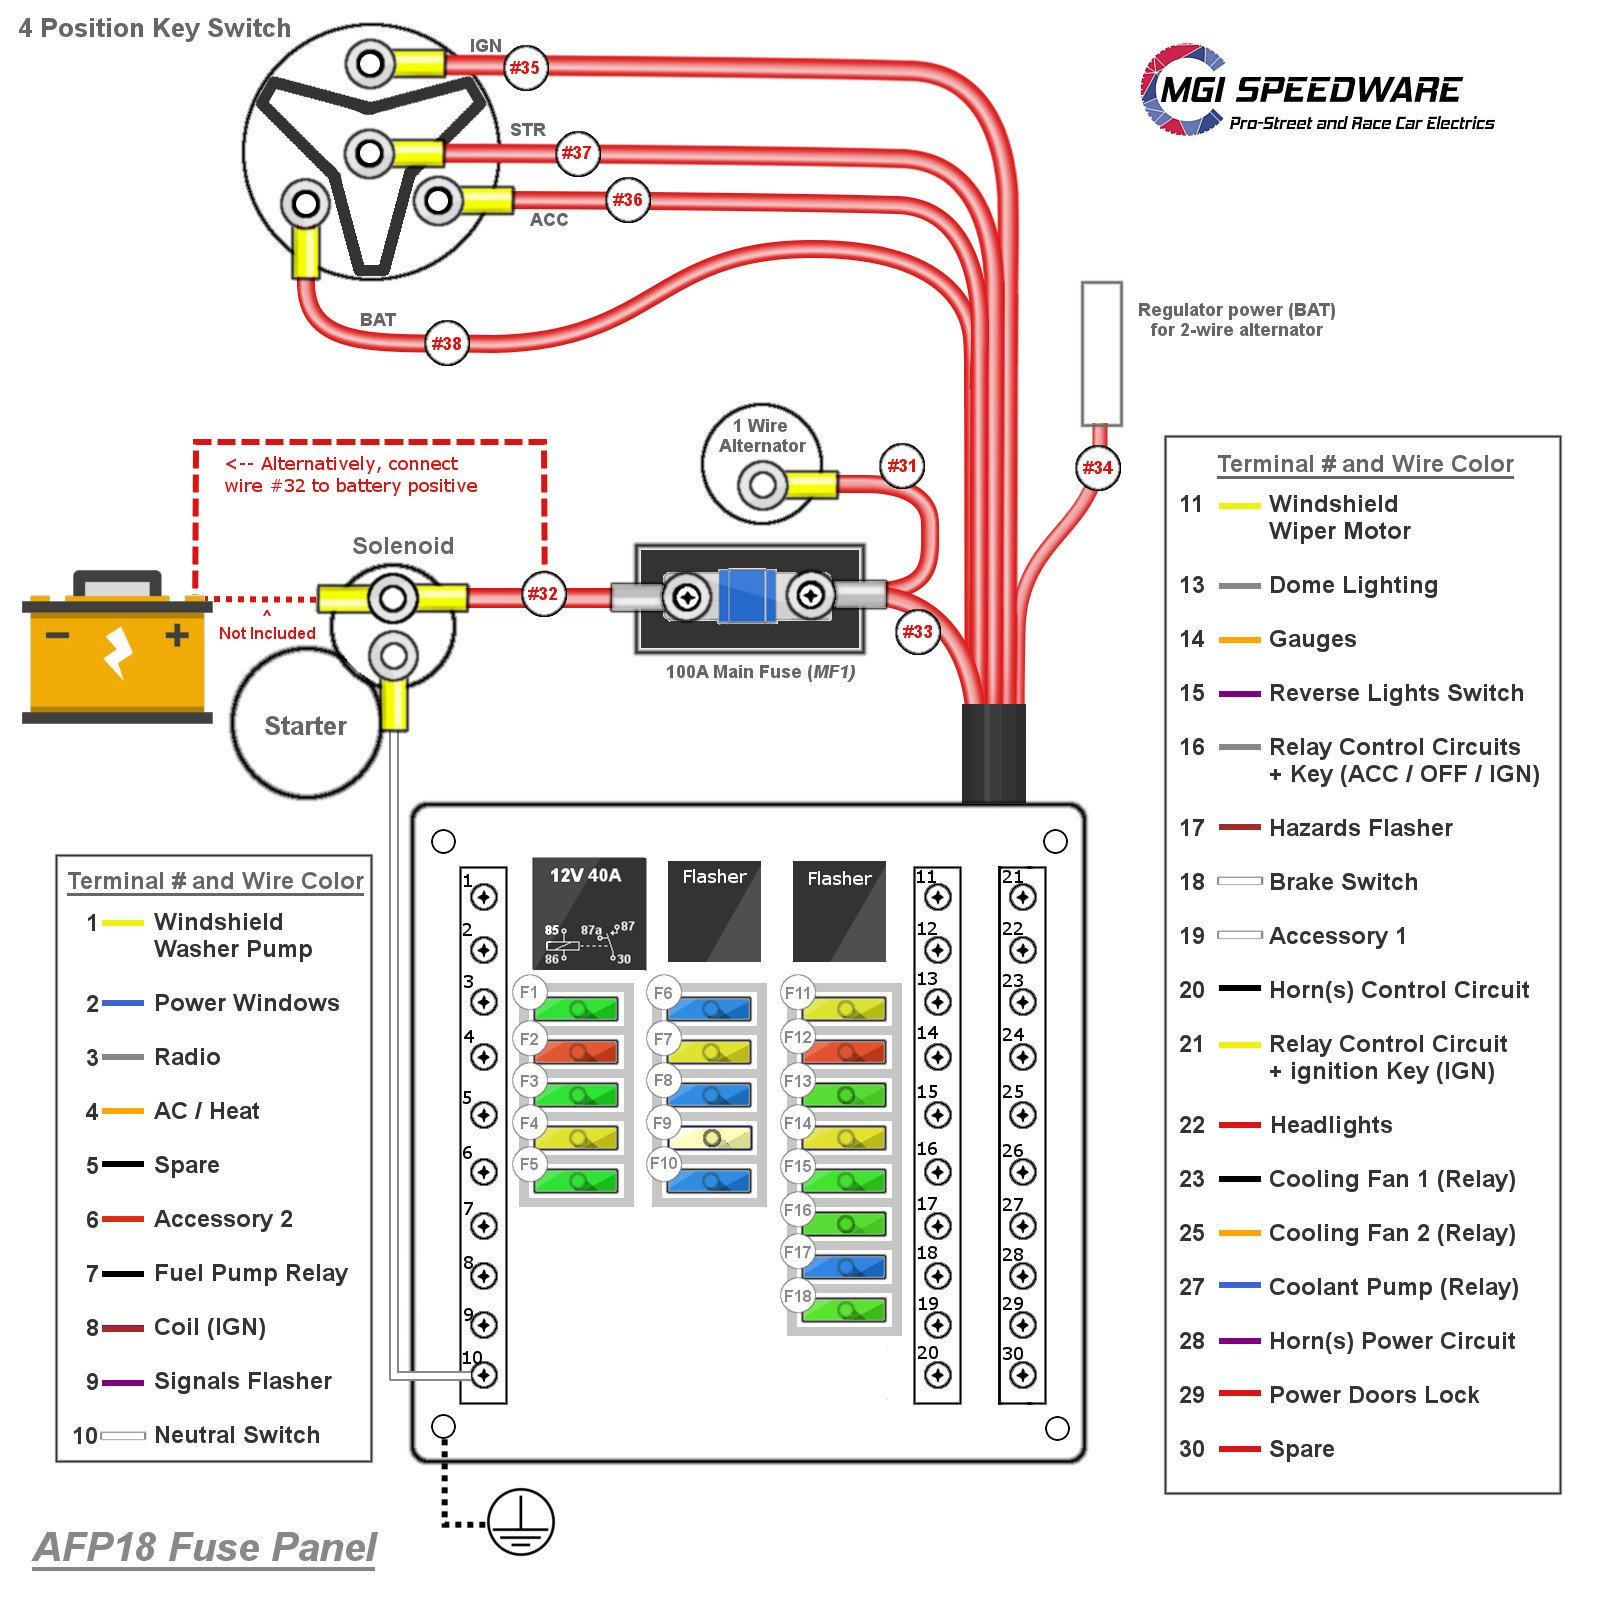 hight resolution of automotive fuse box with 18 fuses mgi speedware fuse wire harness diagram 18